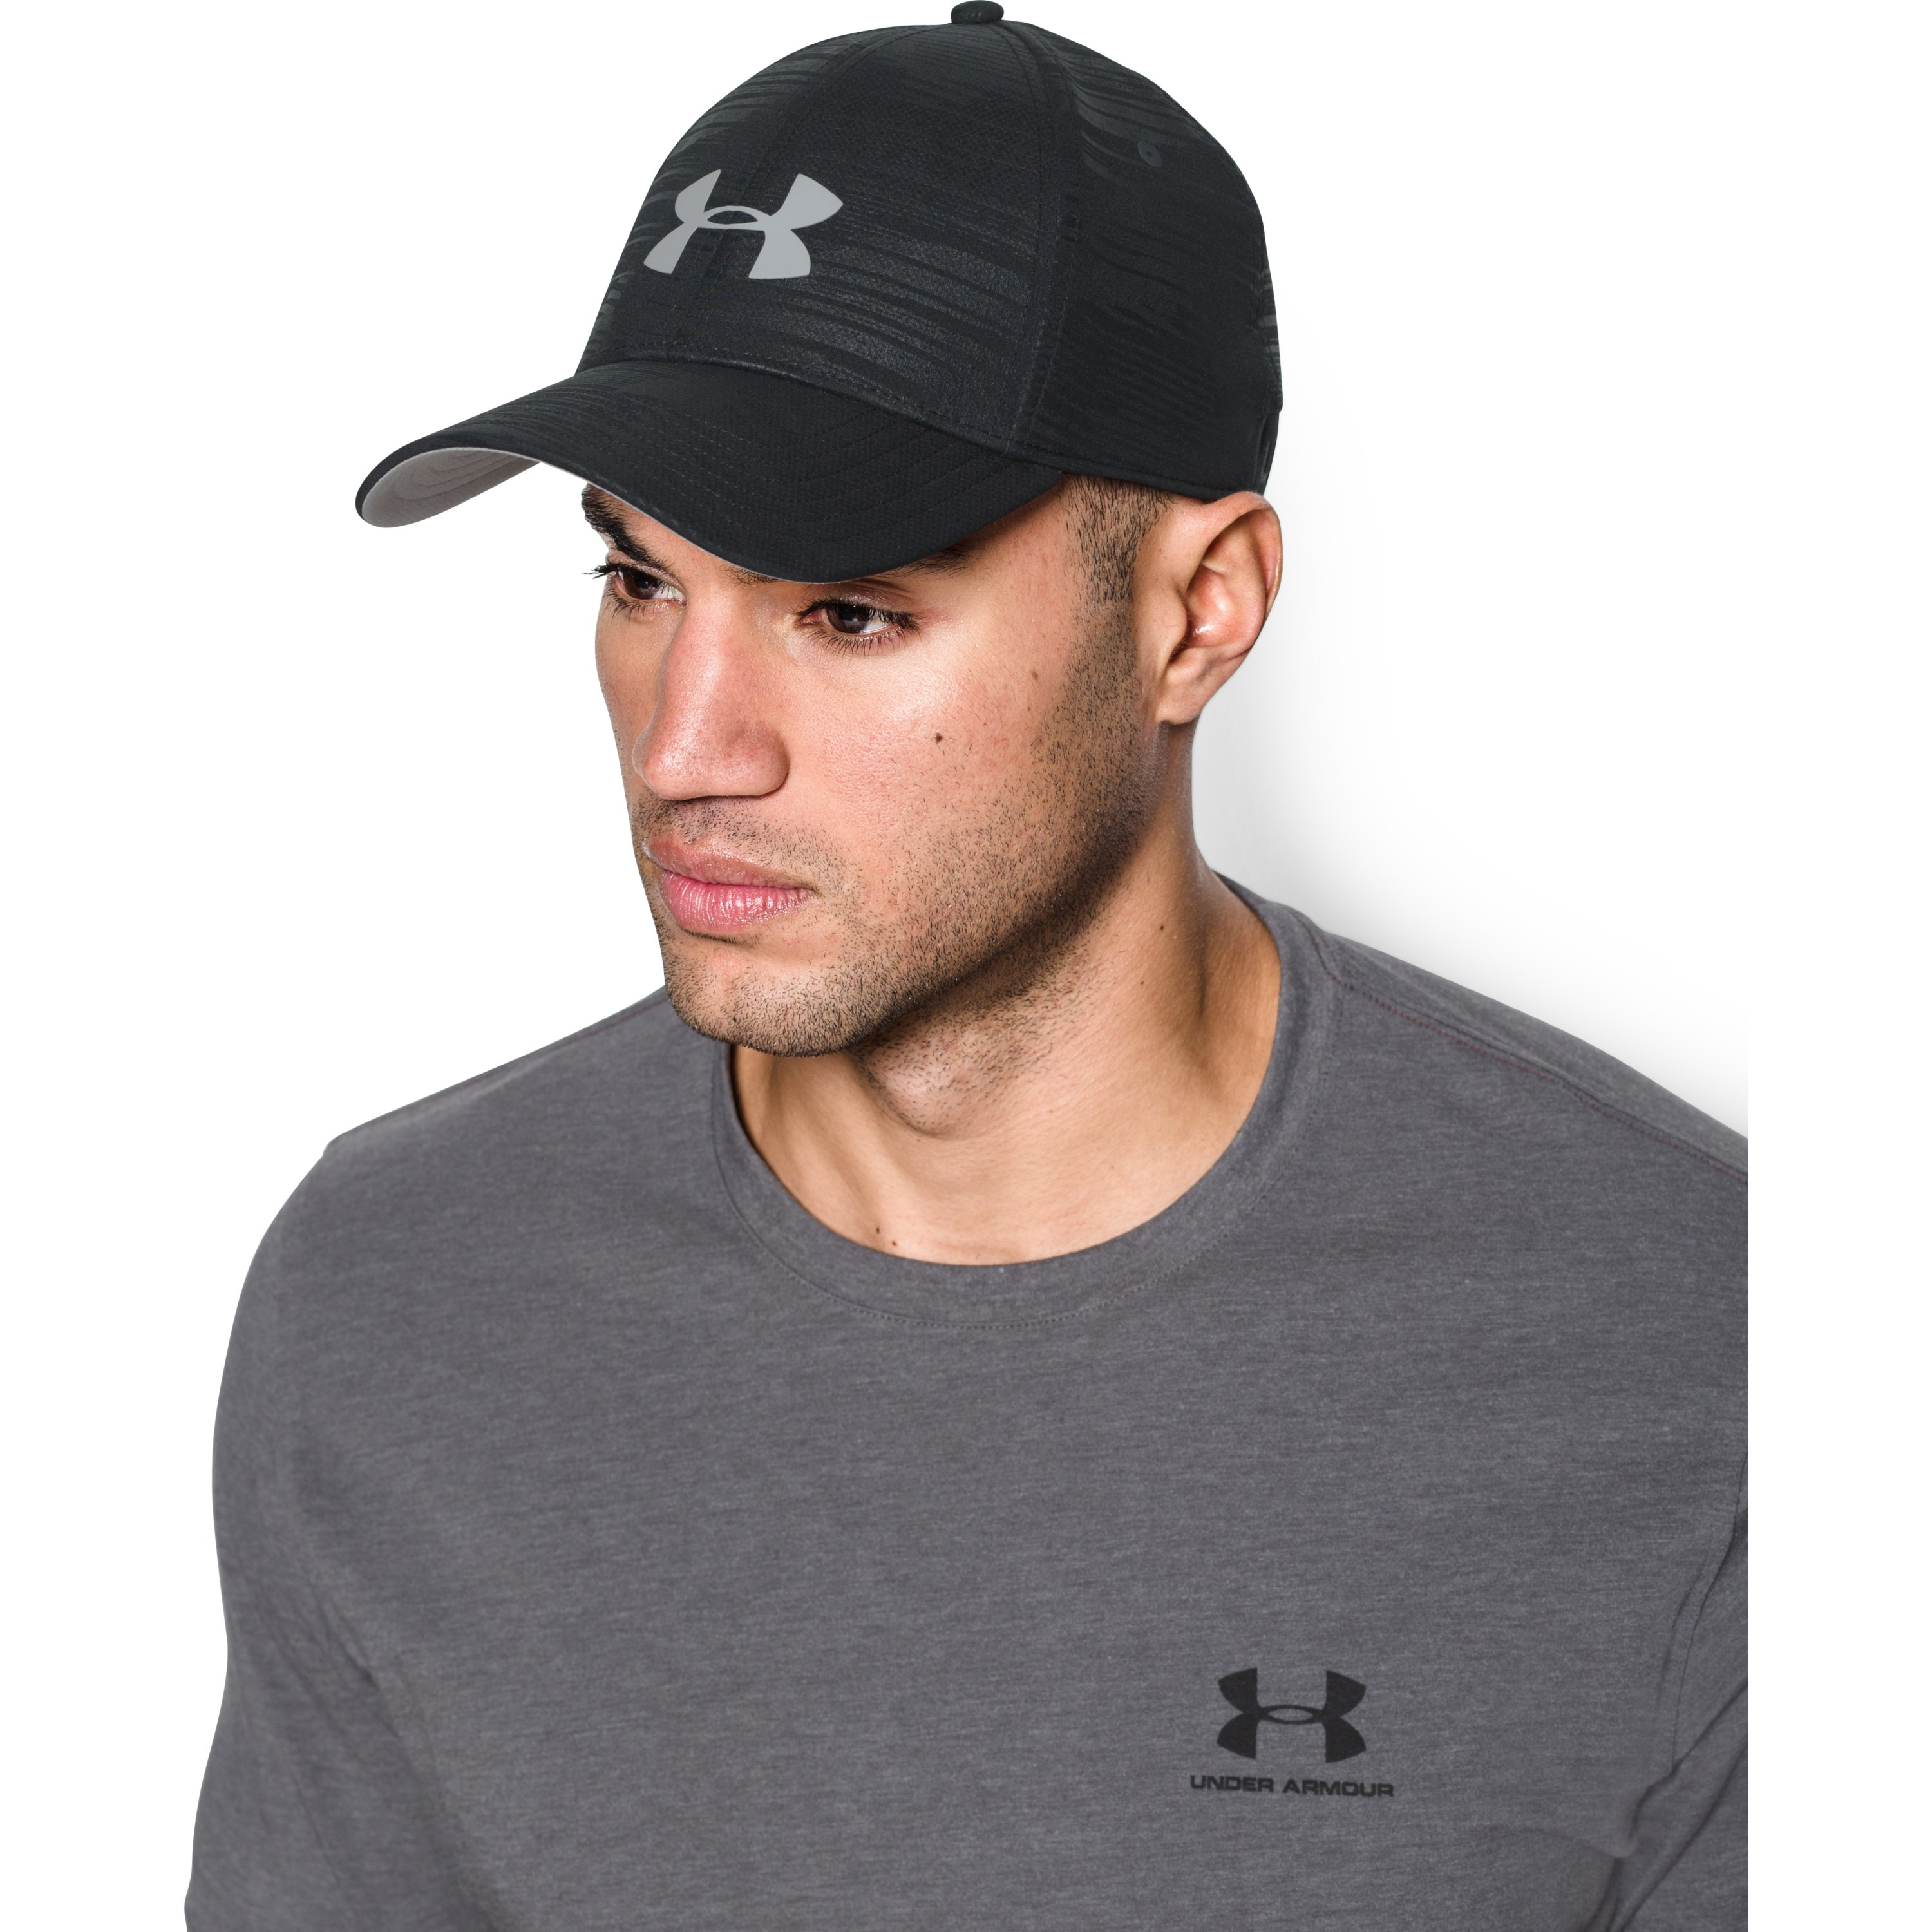 Lyst - Under Armour Men s Ua Storm Headline Cap in Blue for Men eb7f87a049b